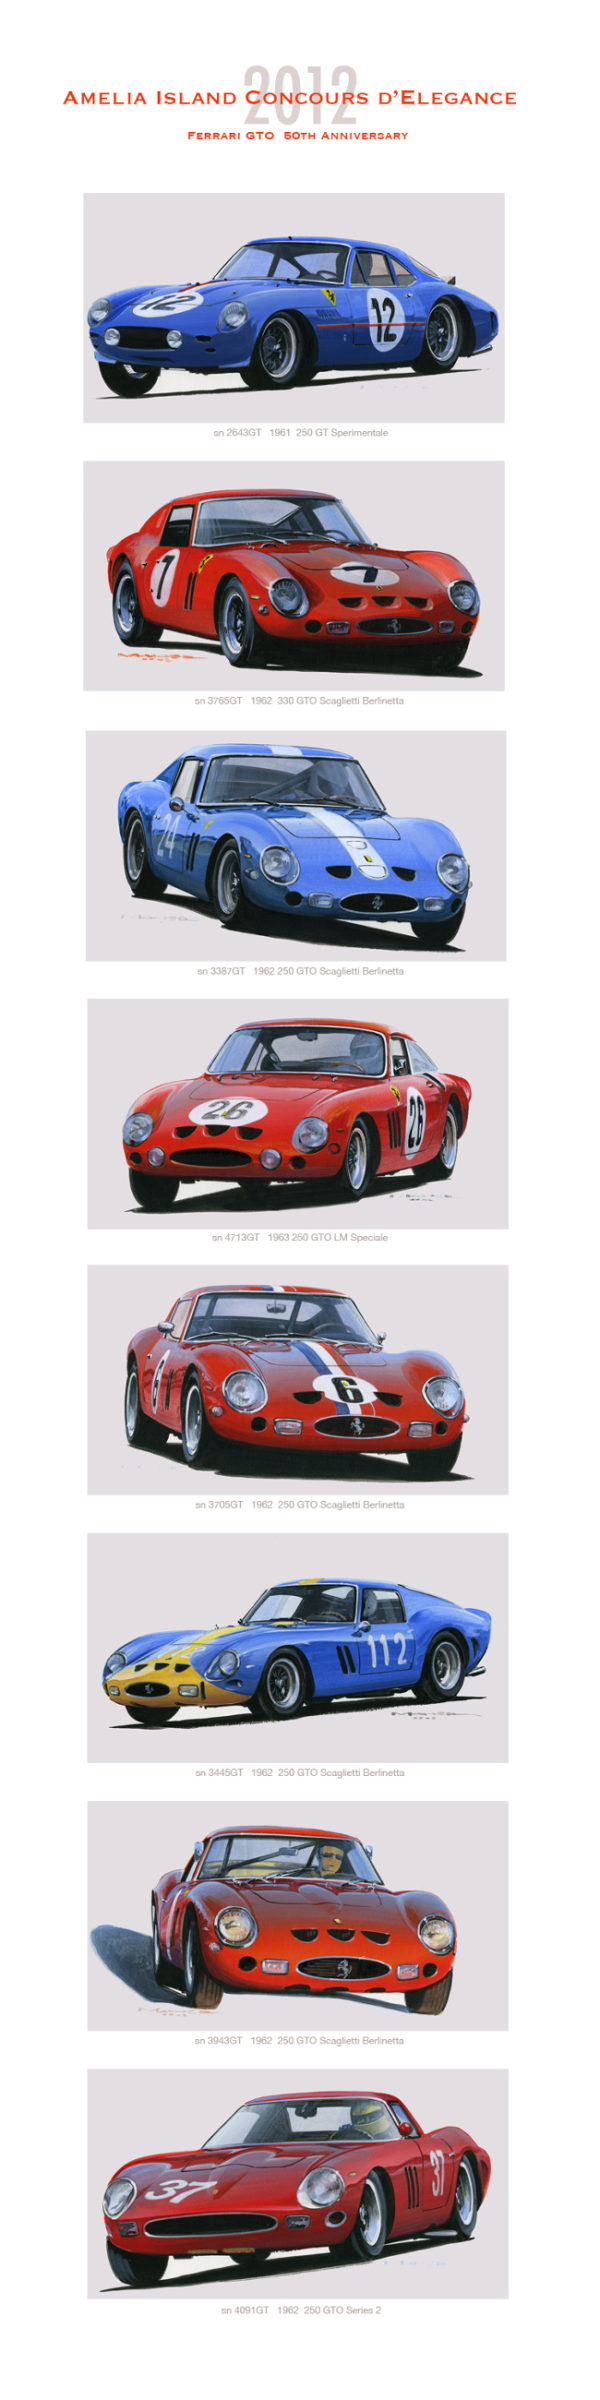 Car racing artwork for sale Amelia 2012 of GTO by Charles Maher